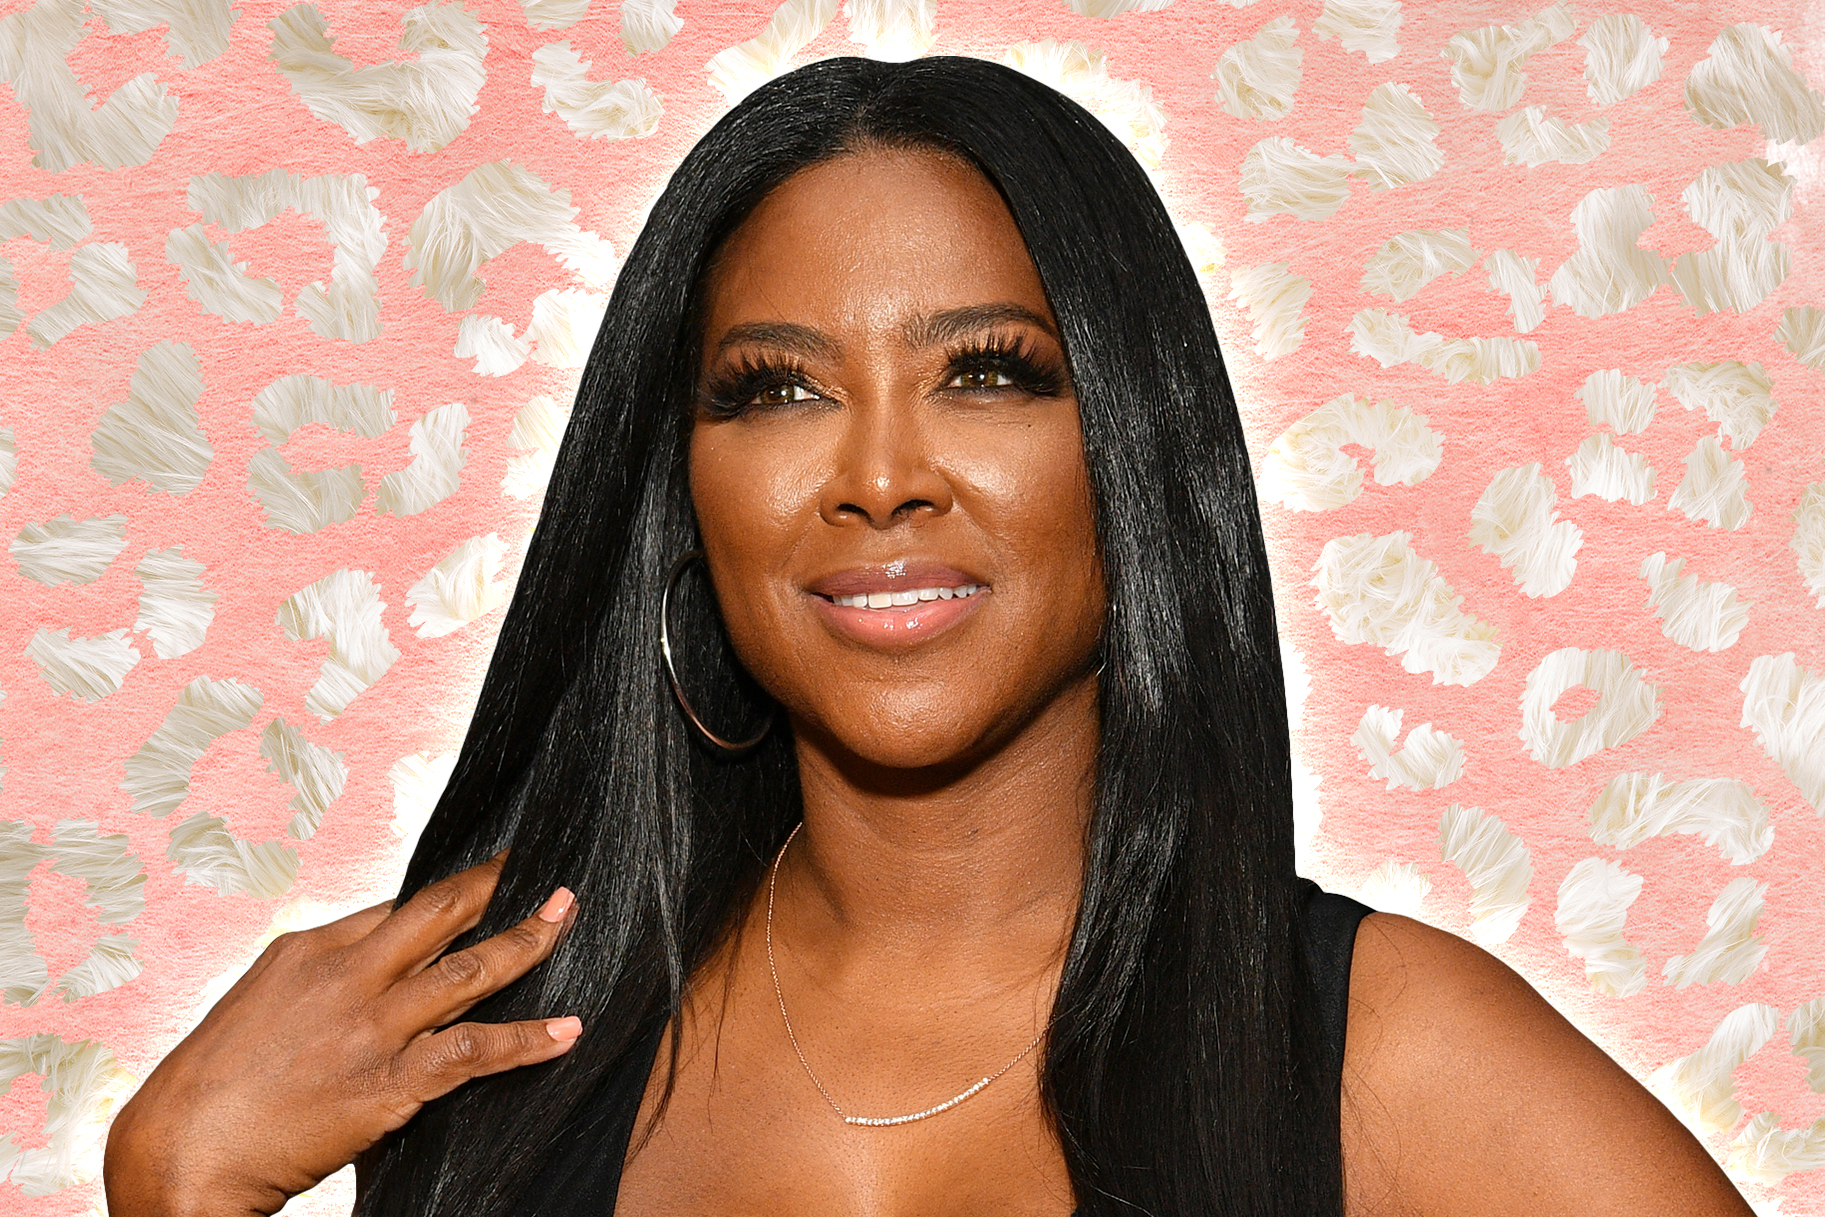 Kenya Moore Has A Leg Up On The Competition - See The Photo That She Shared